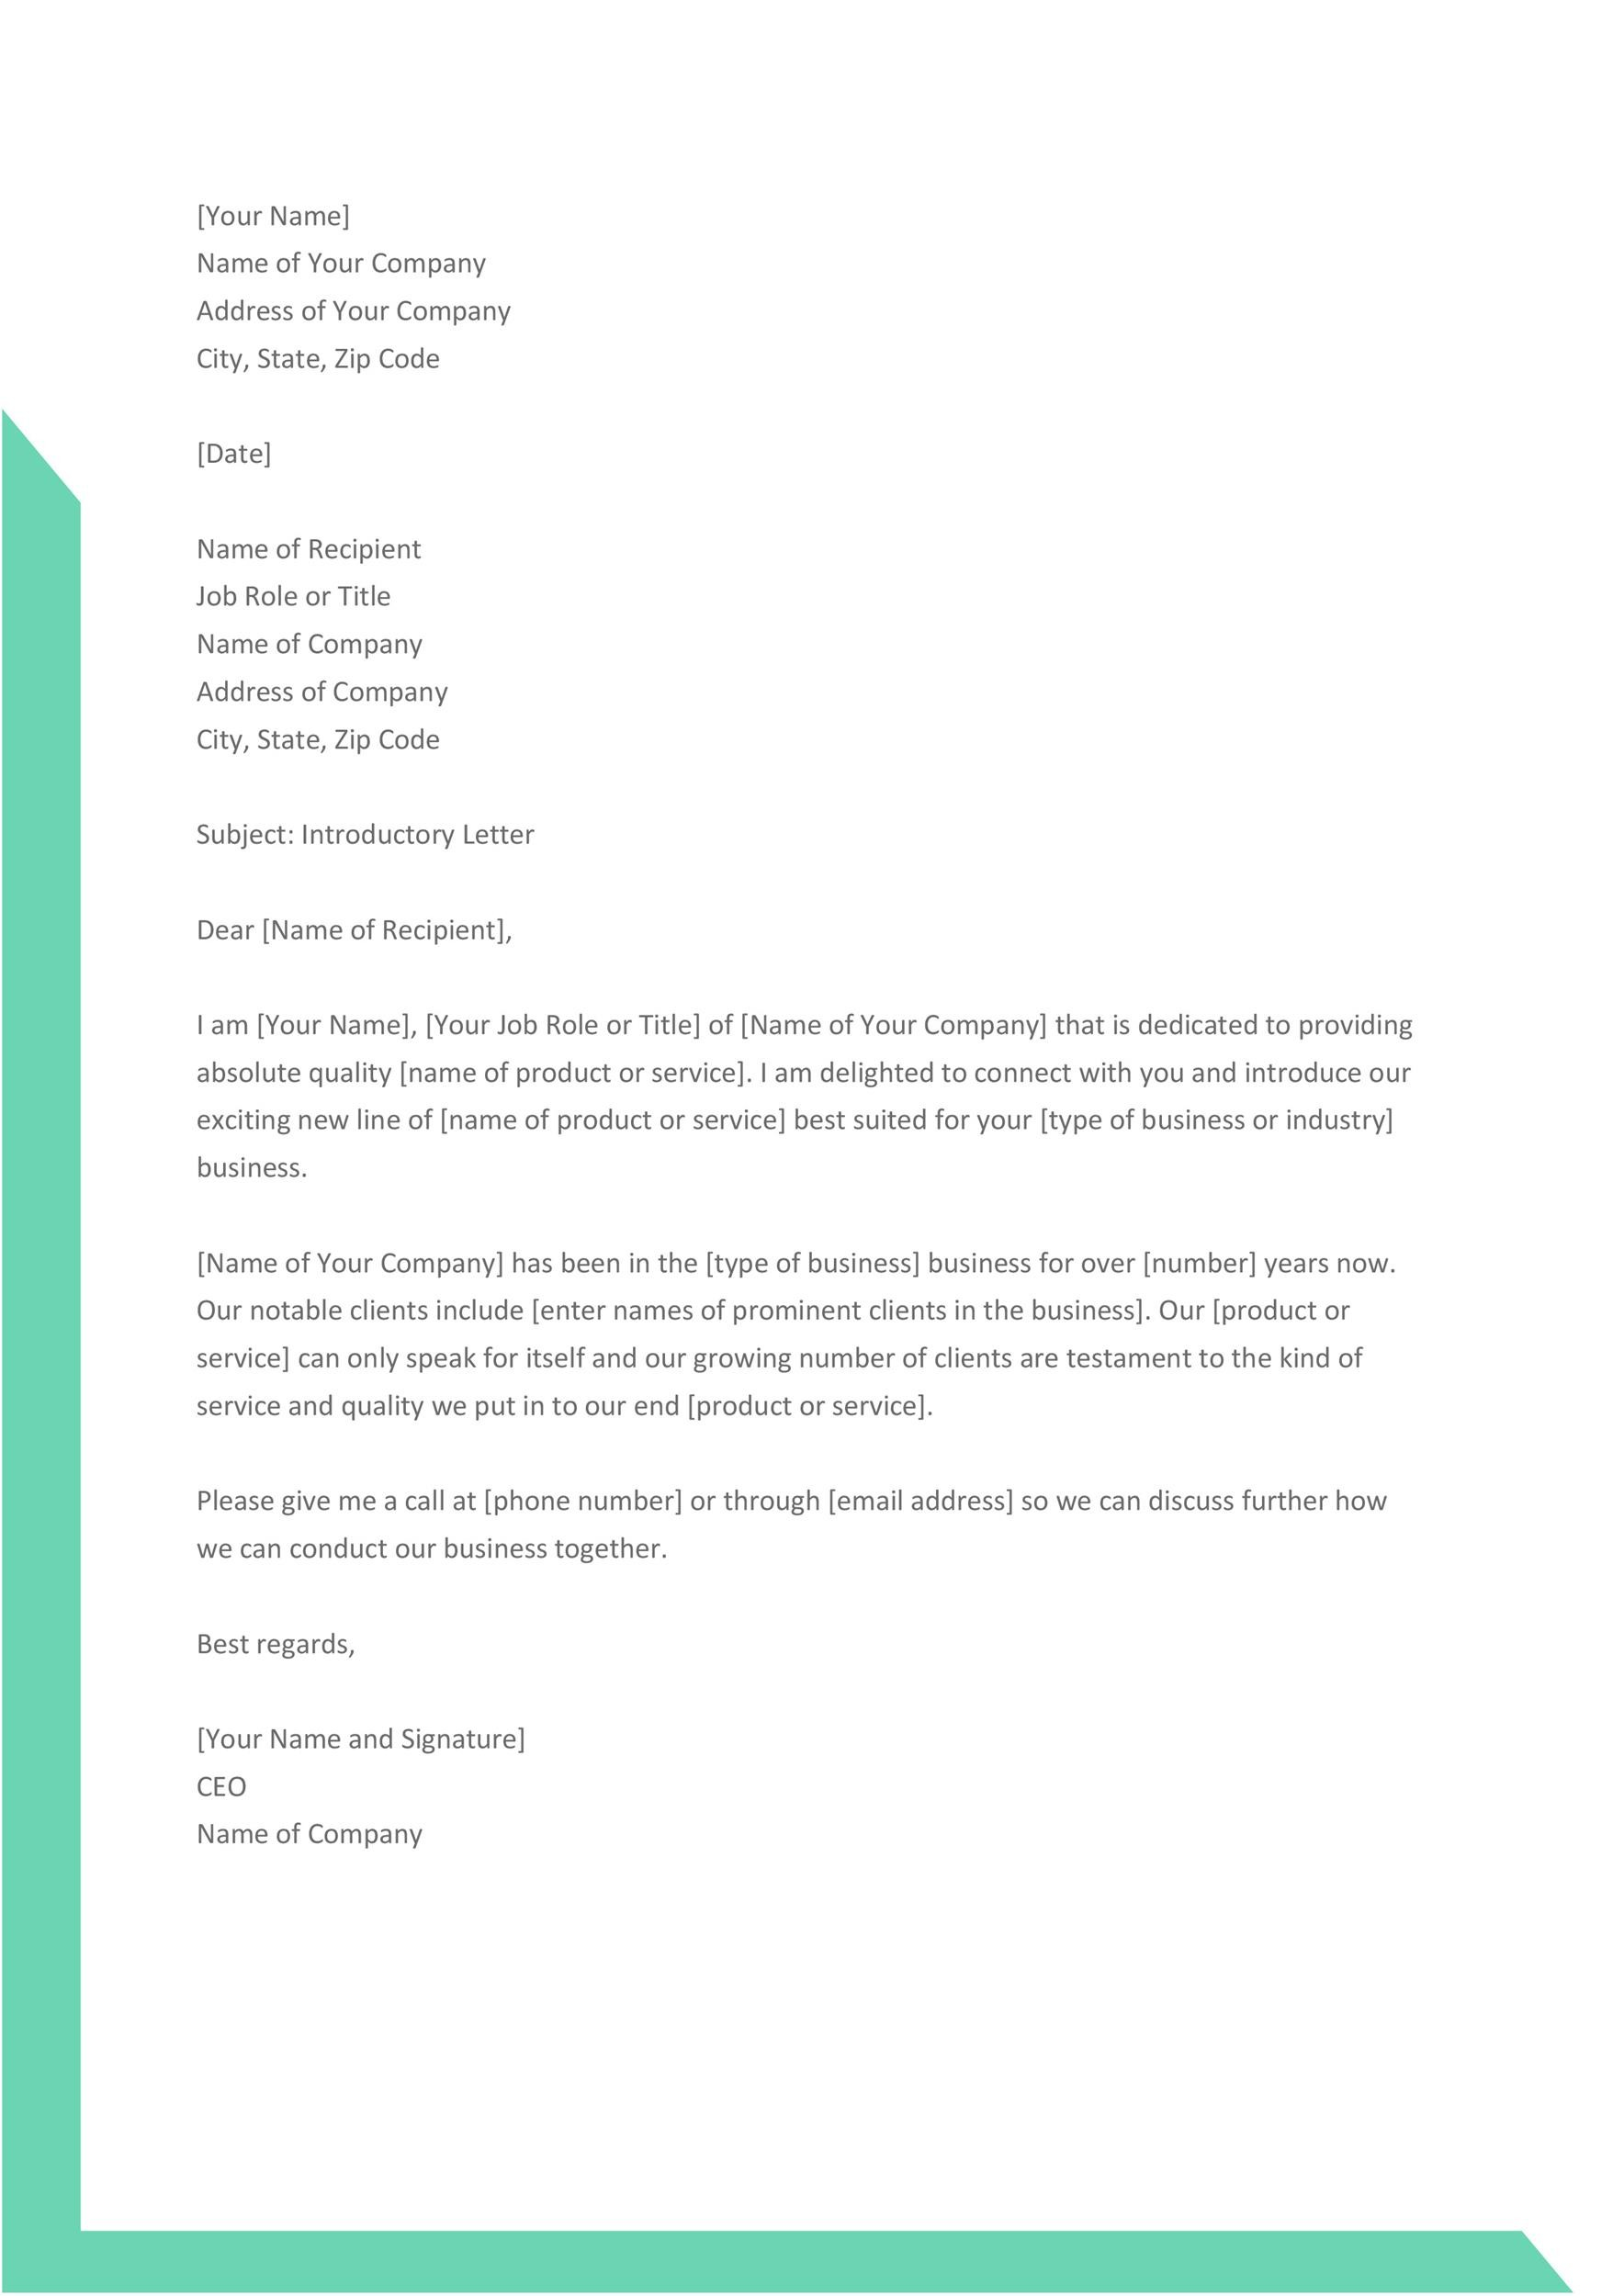 New Ceo Introduction Letter To Customers from templatelab.com